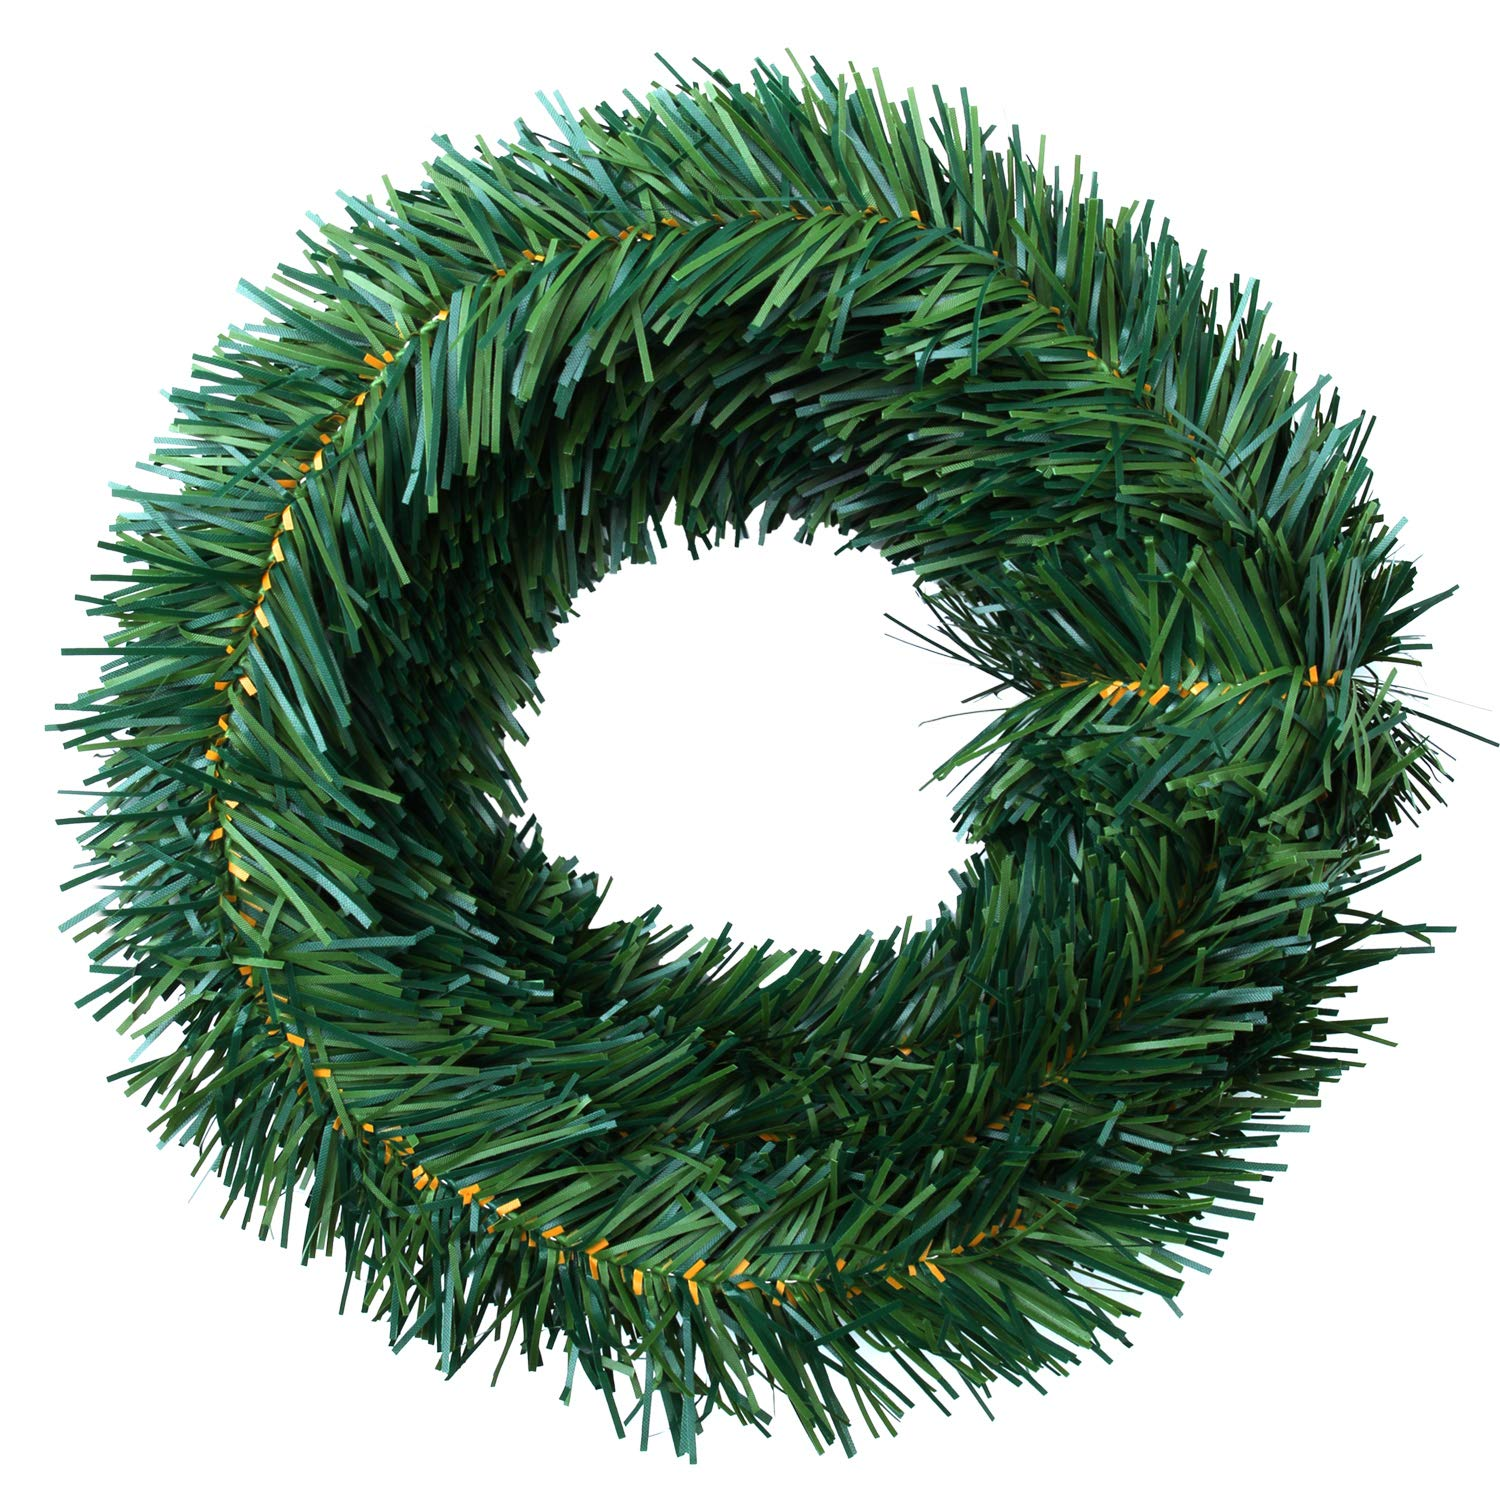 Christmas Pine Garland.Elcoho 18 Foot Christmas Pine Garlands Christmas Artificial Green Pine Garland Wreaths For Christmas Home Or Wedding Party Decorations Green